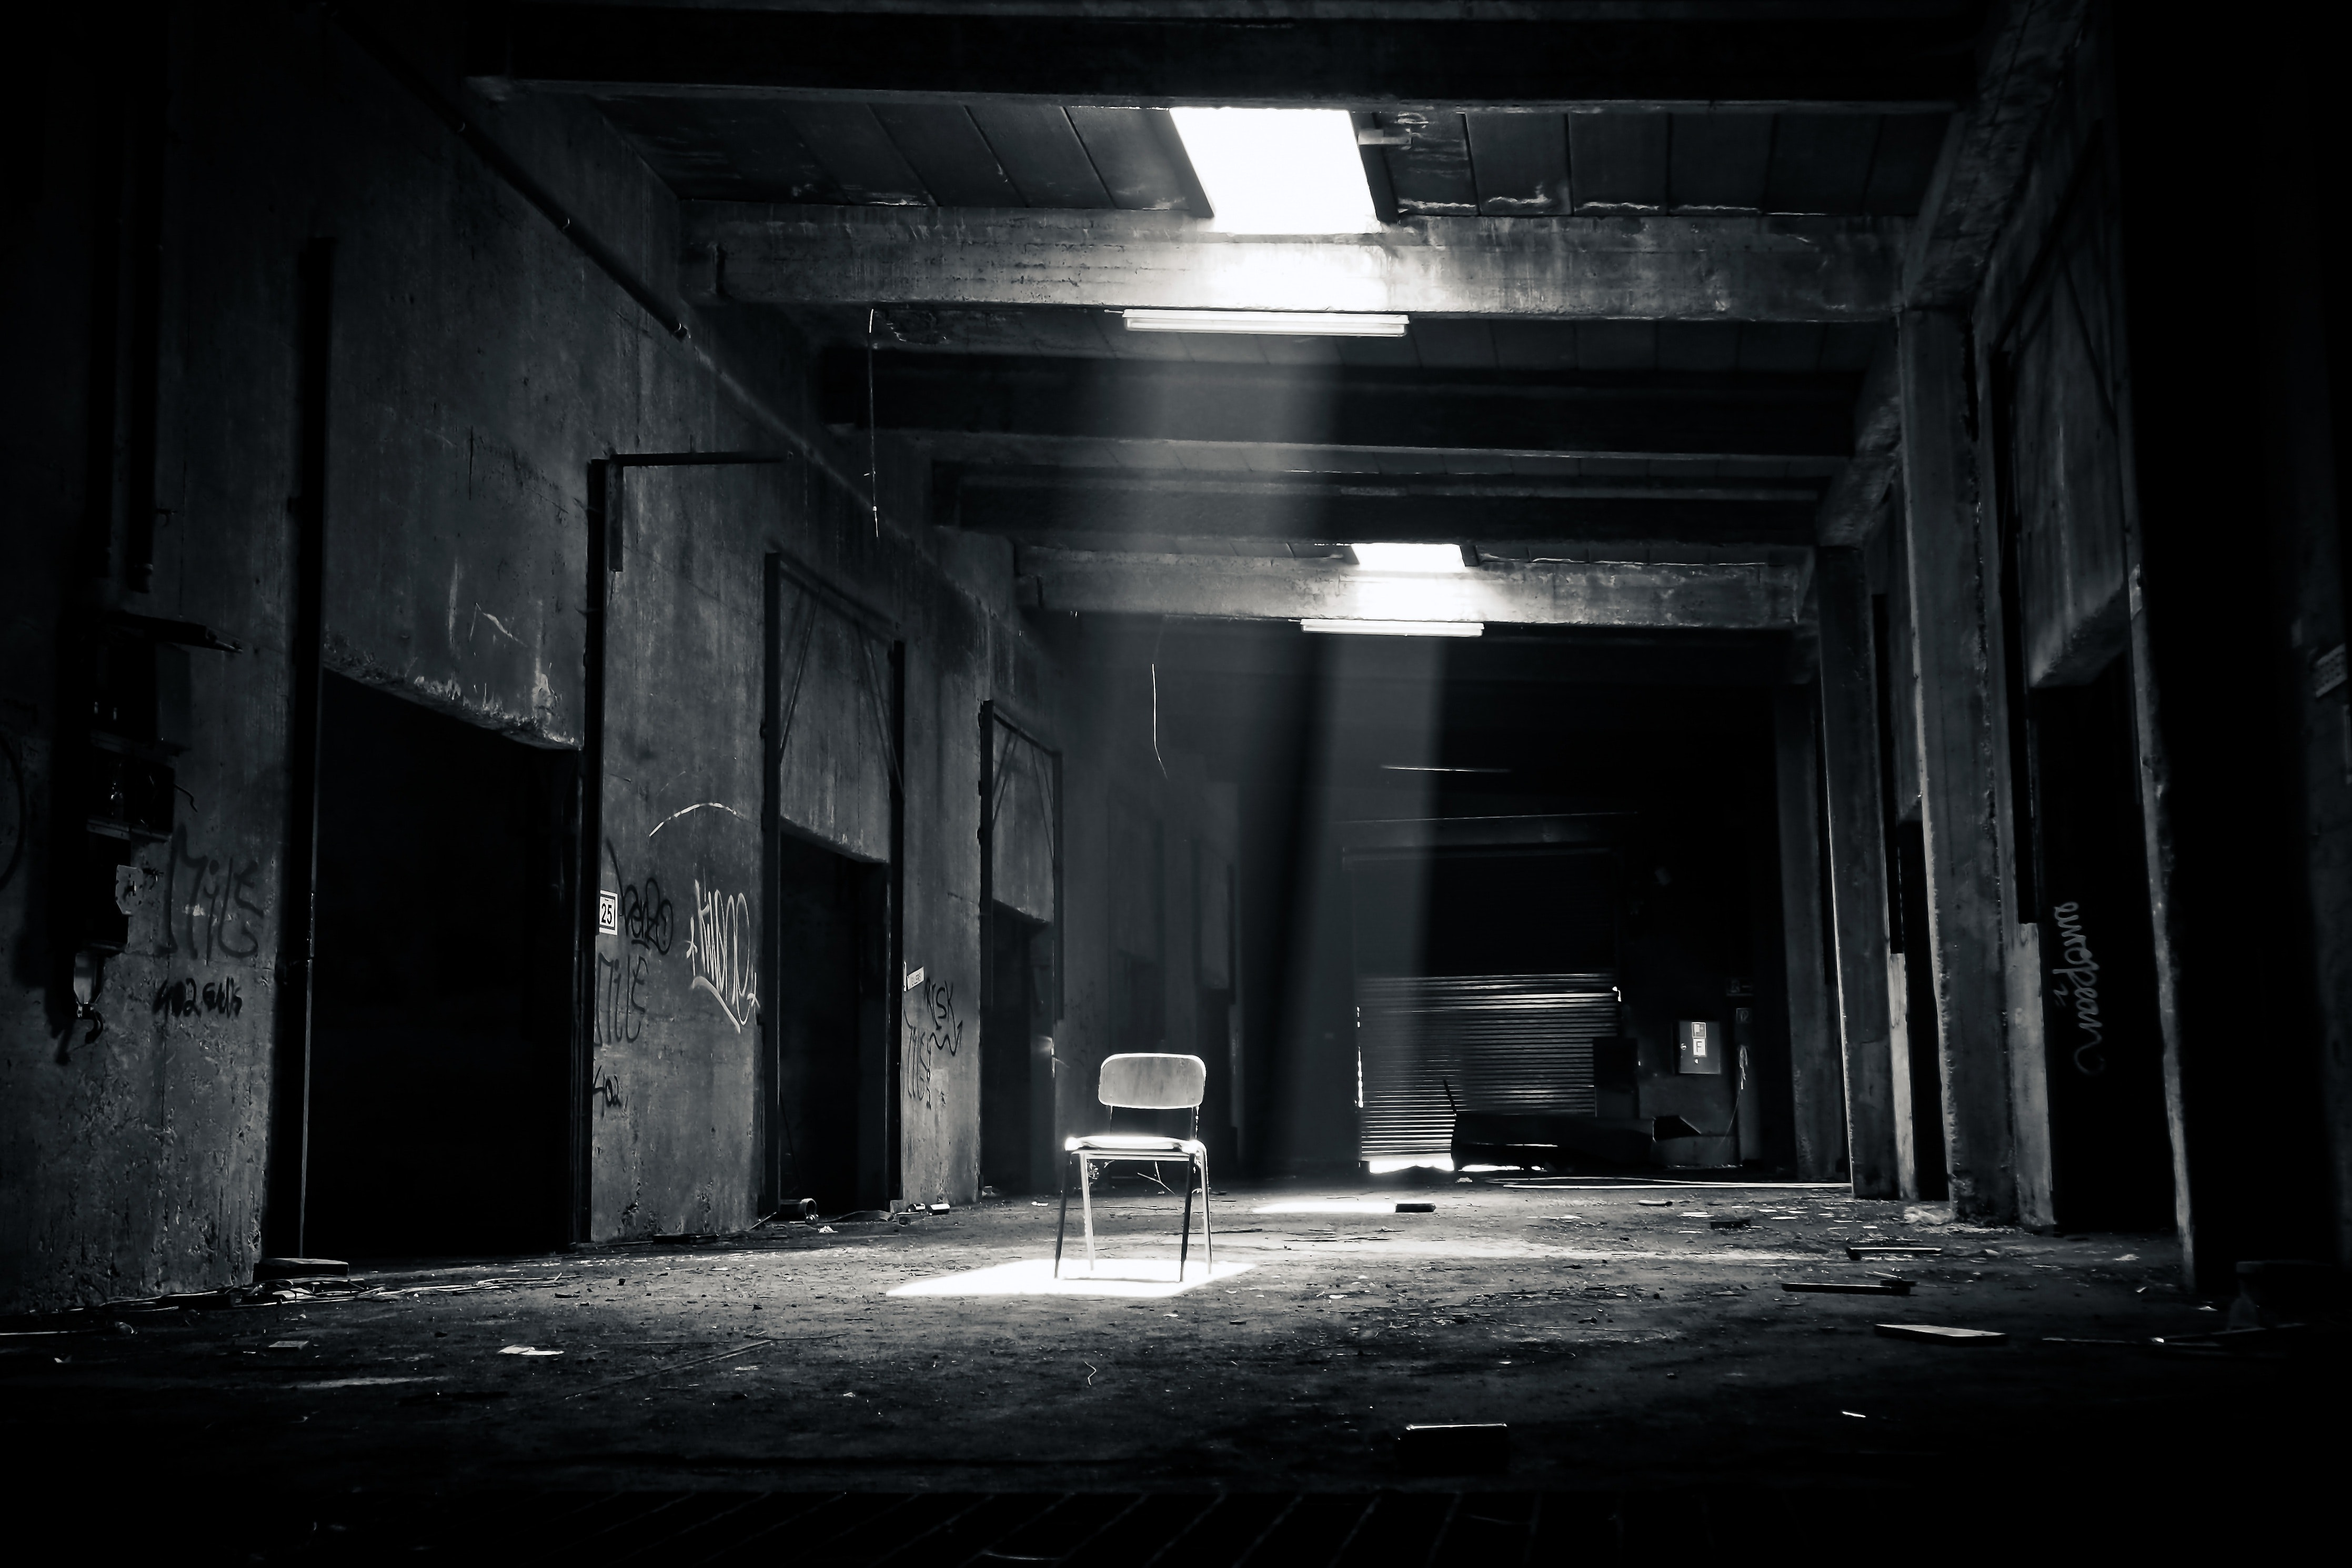 Grayscale photo of chair inside the establishment pixabay